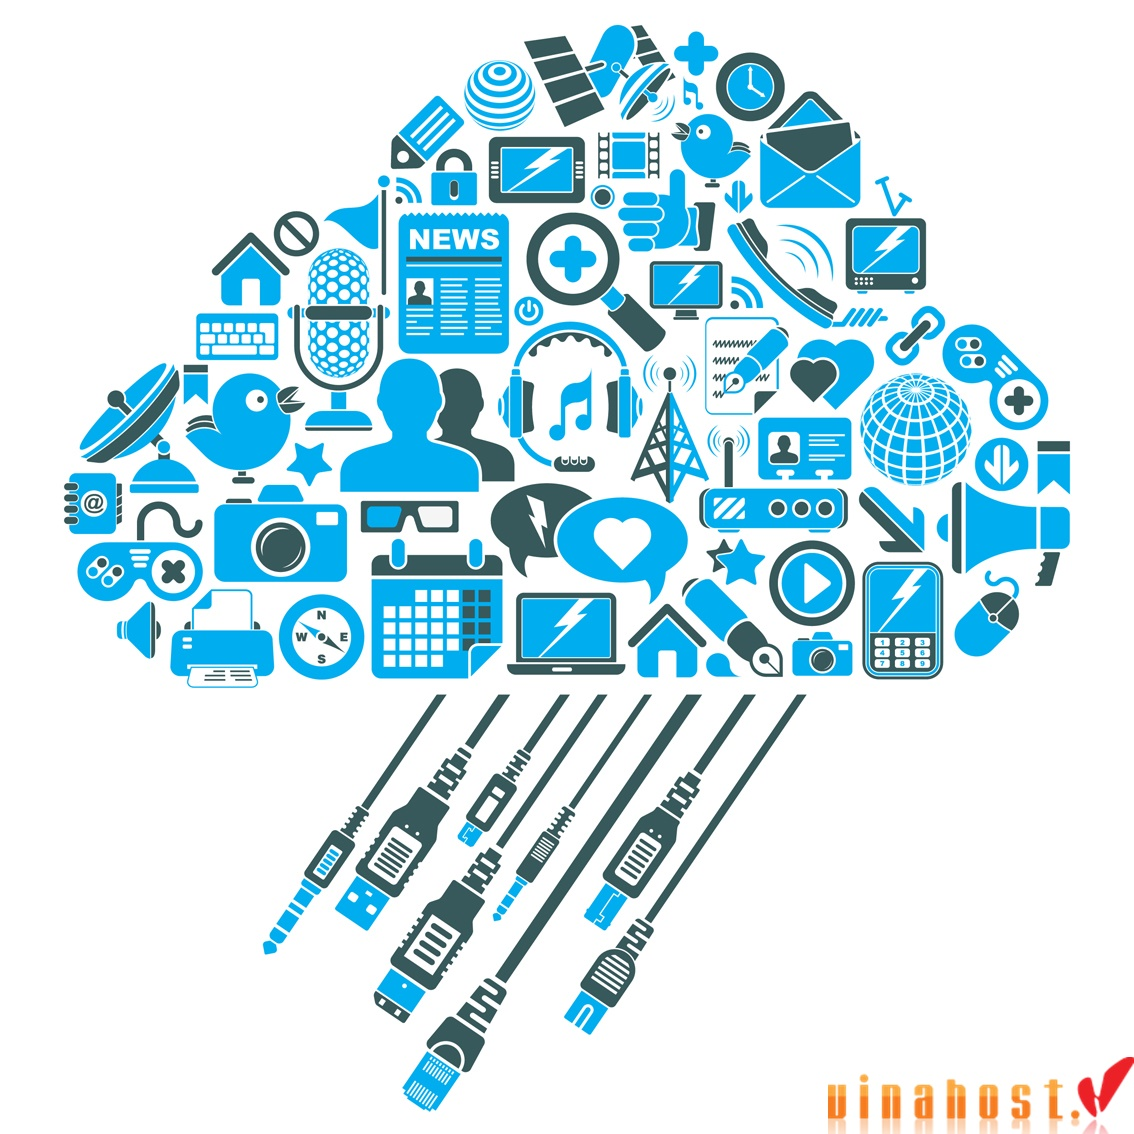 vinahost-How-to-choose-between-China-cloud-servers-and-colocation-part-2-1